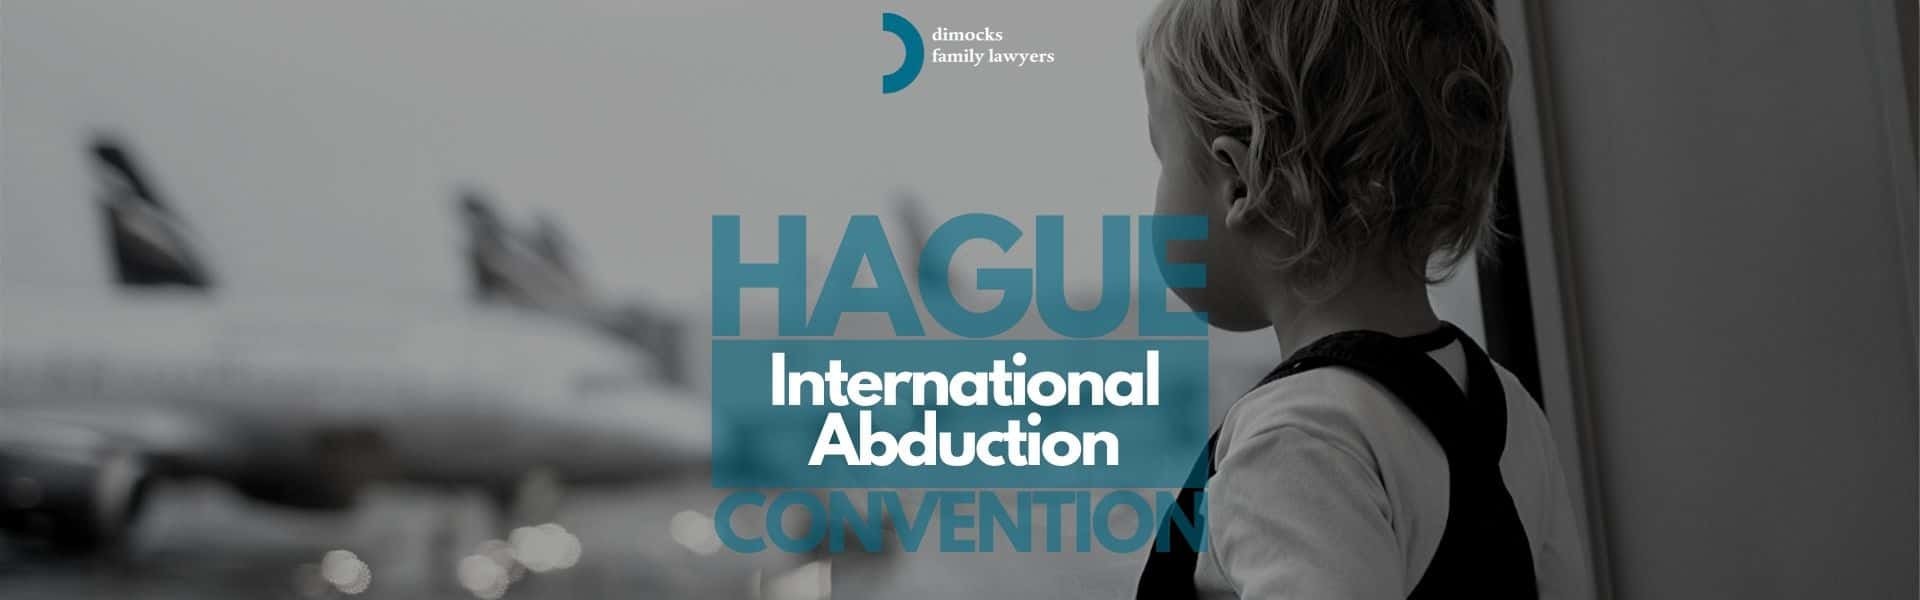 Hague Convention Lawyers International Child Abduction Lawyers Sydney